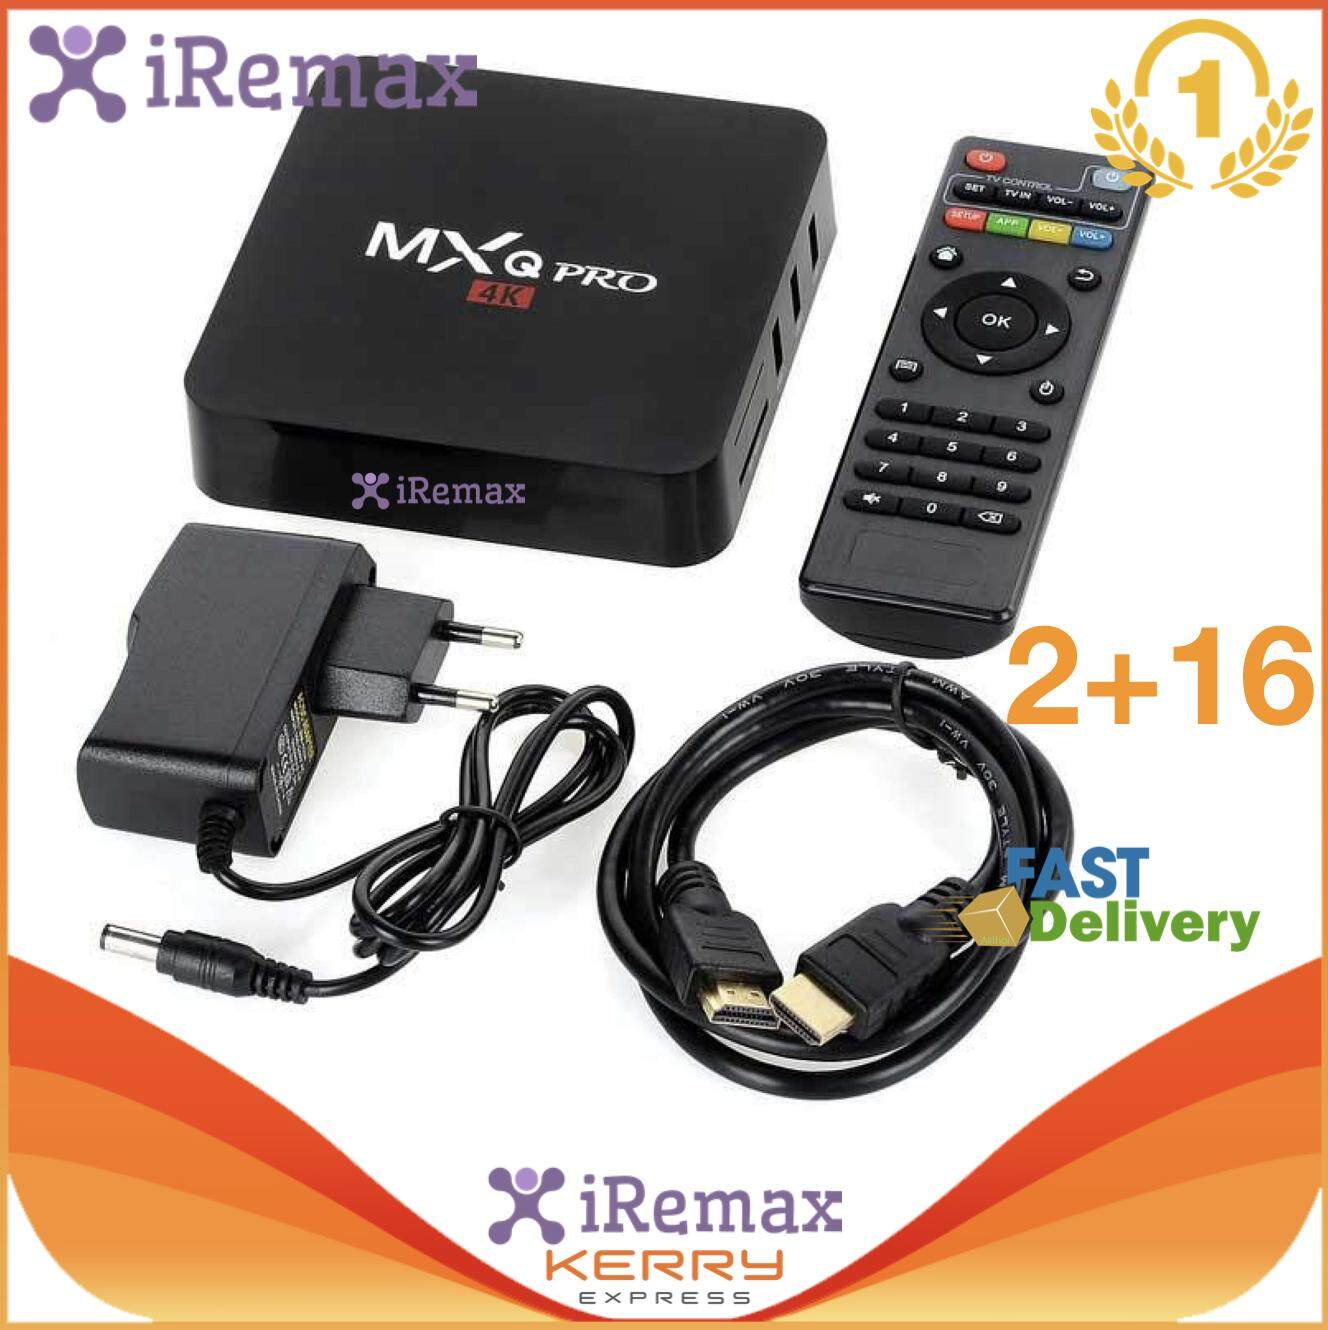 ส่วนลด  หนองคาย iRemax MXQ Pro Smart Box Android 7.12 Amlogic 4K Quad Core 64bit 2GB/16GB (สีดำ)